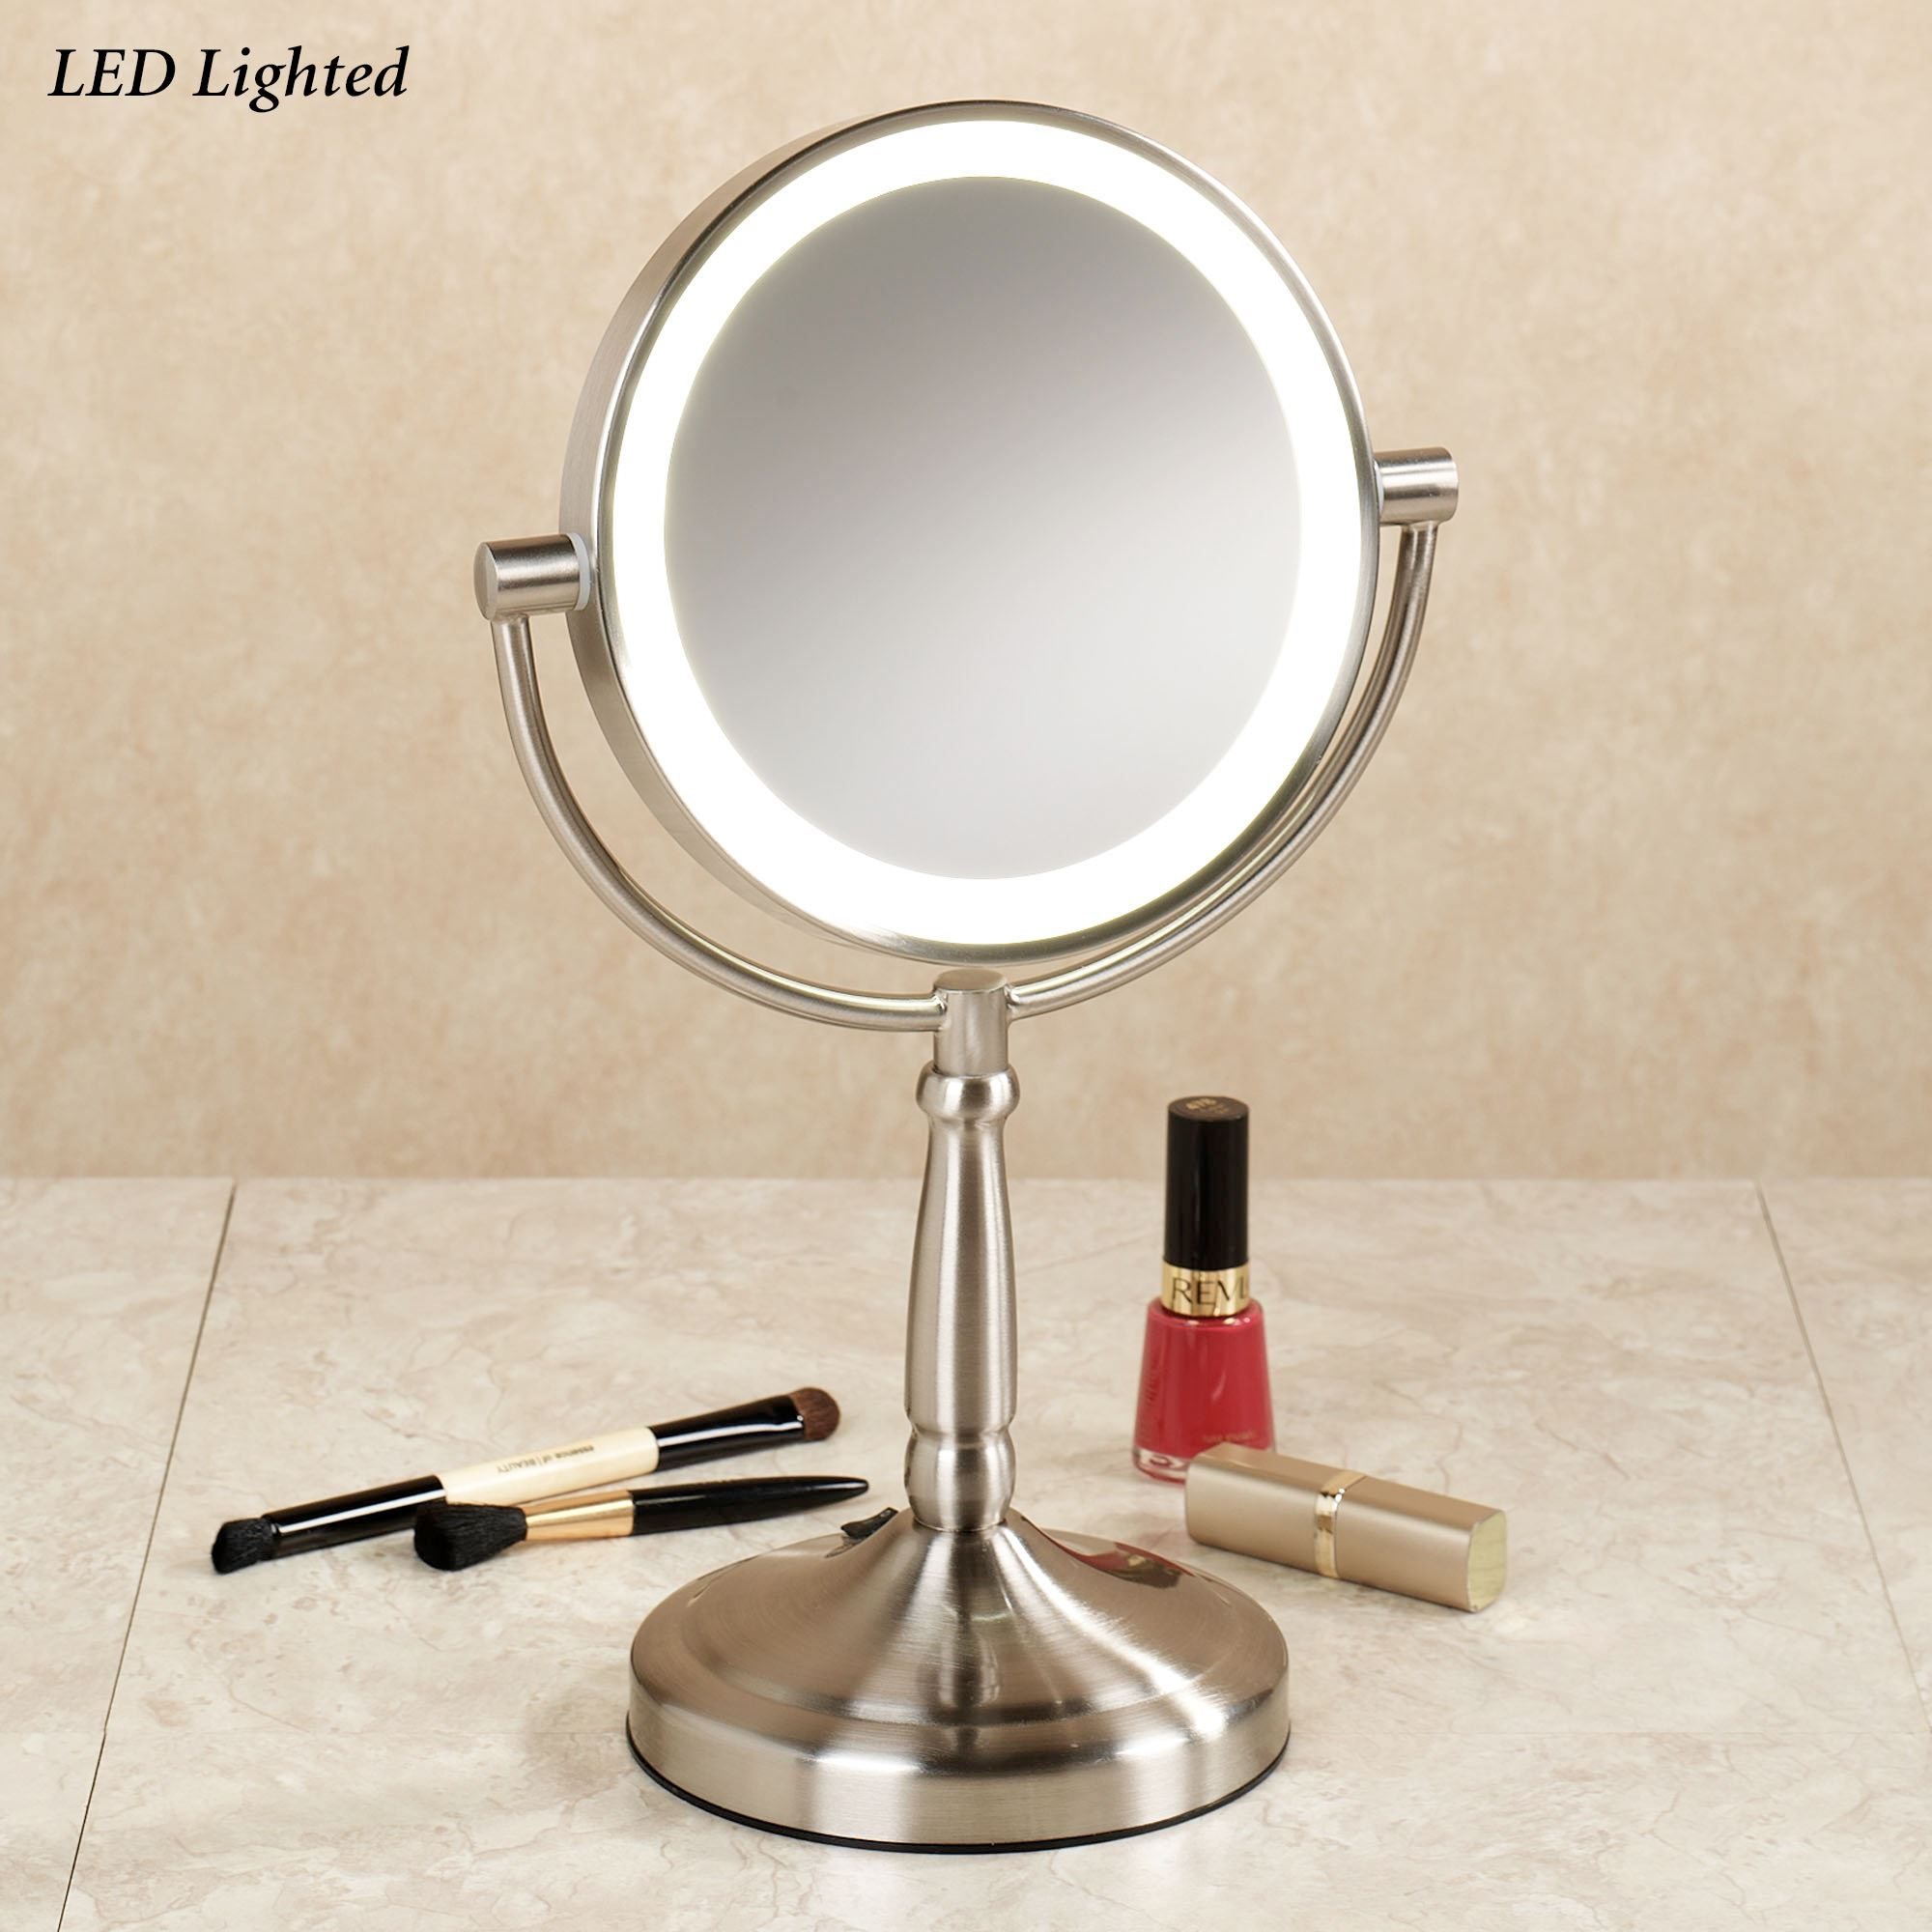 Merveilleux Cordless LED Vanity Mirror Satin Nickel. Touch To Zoom